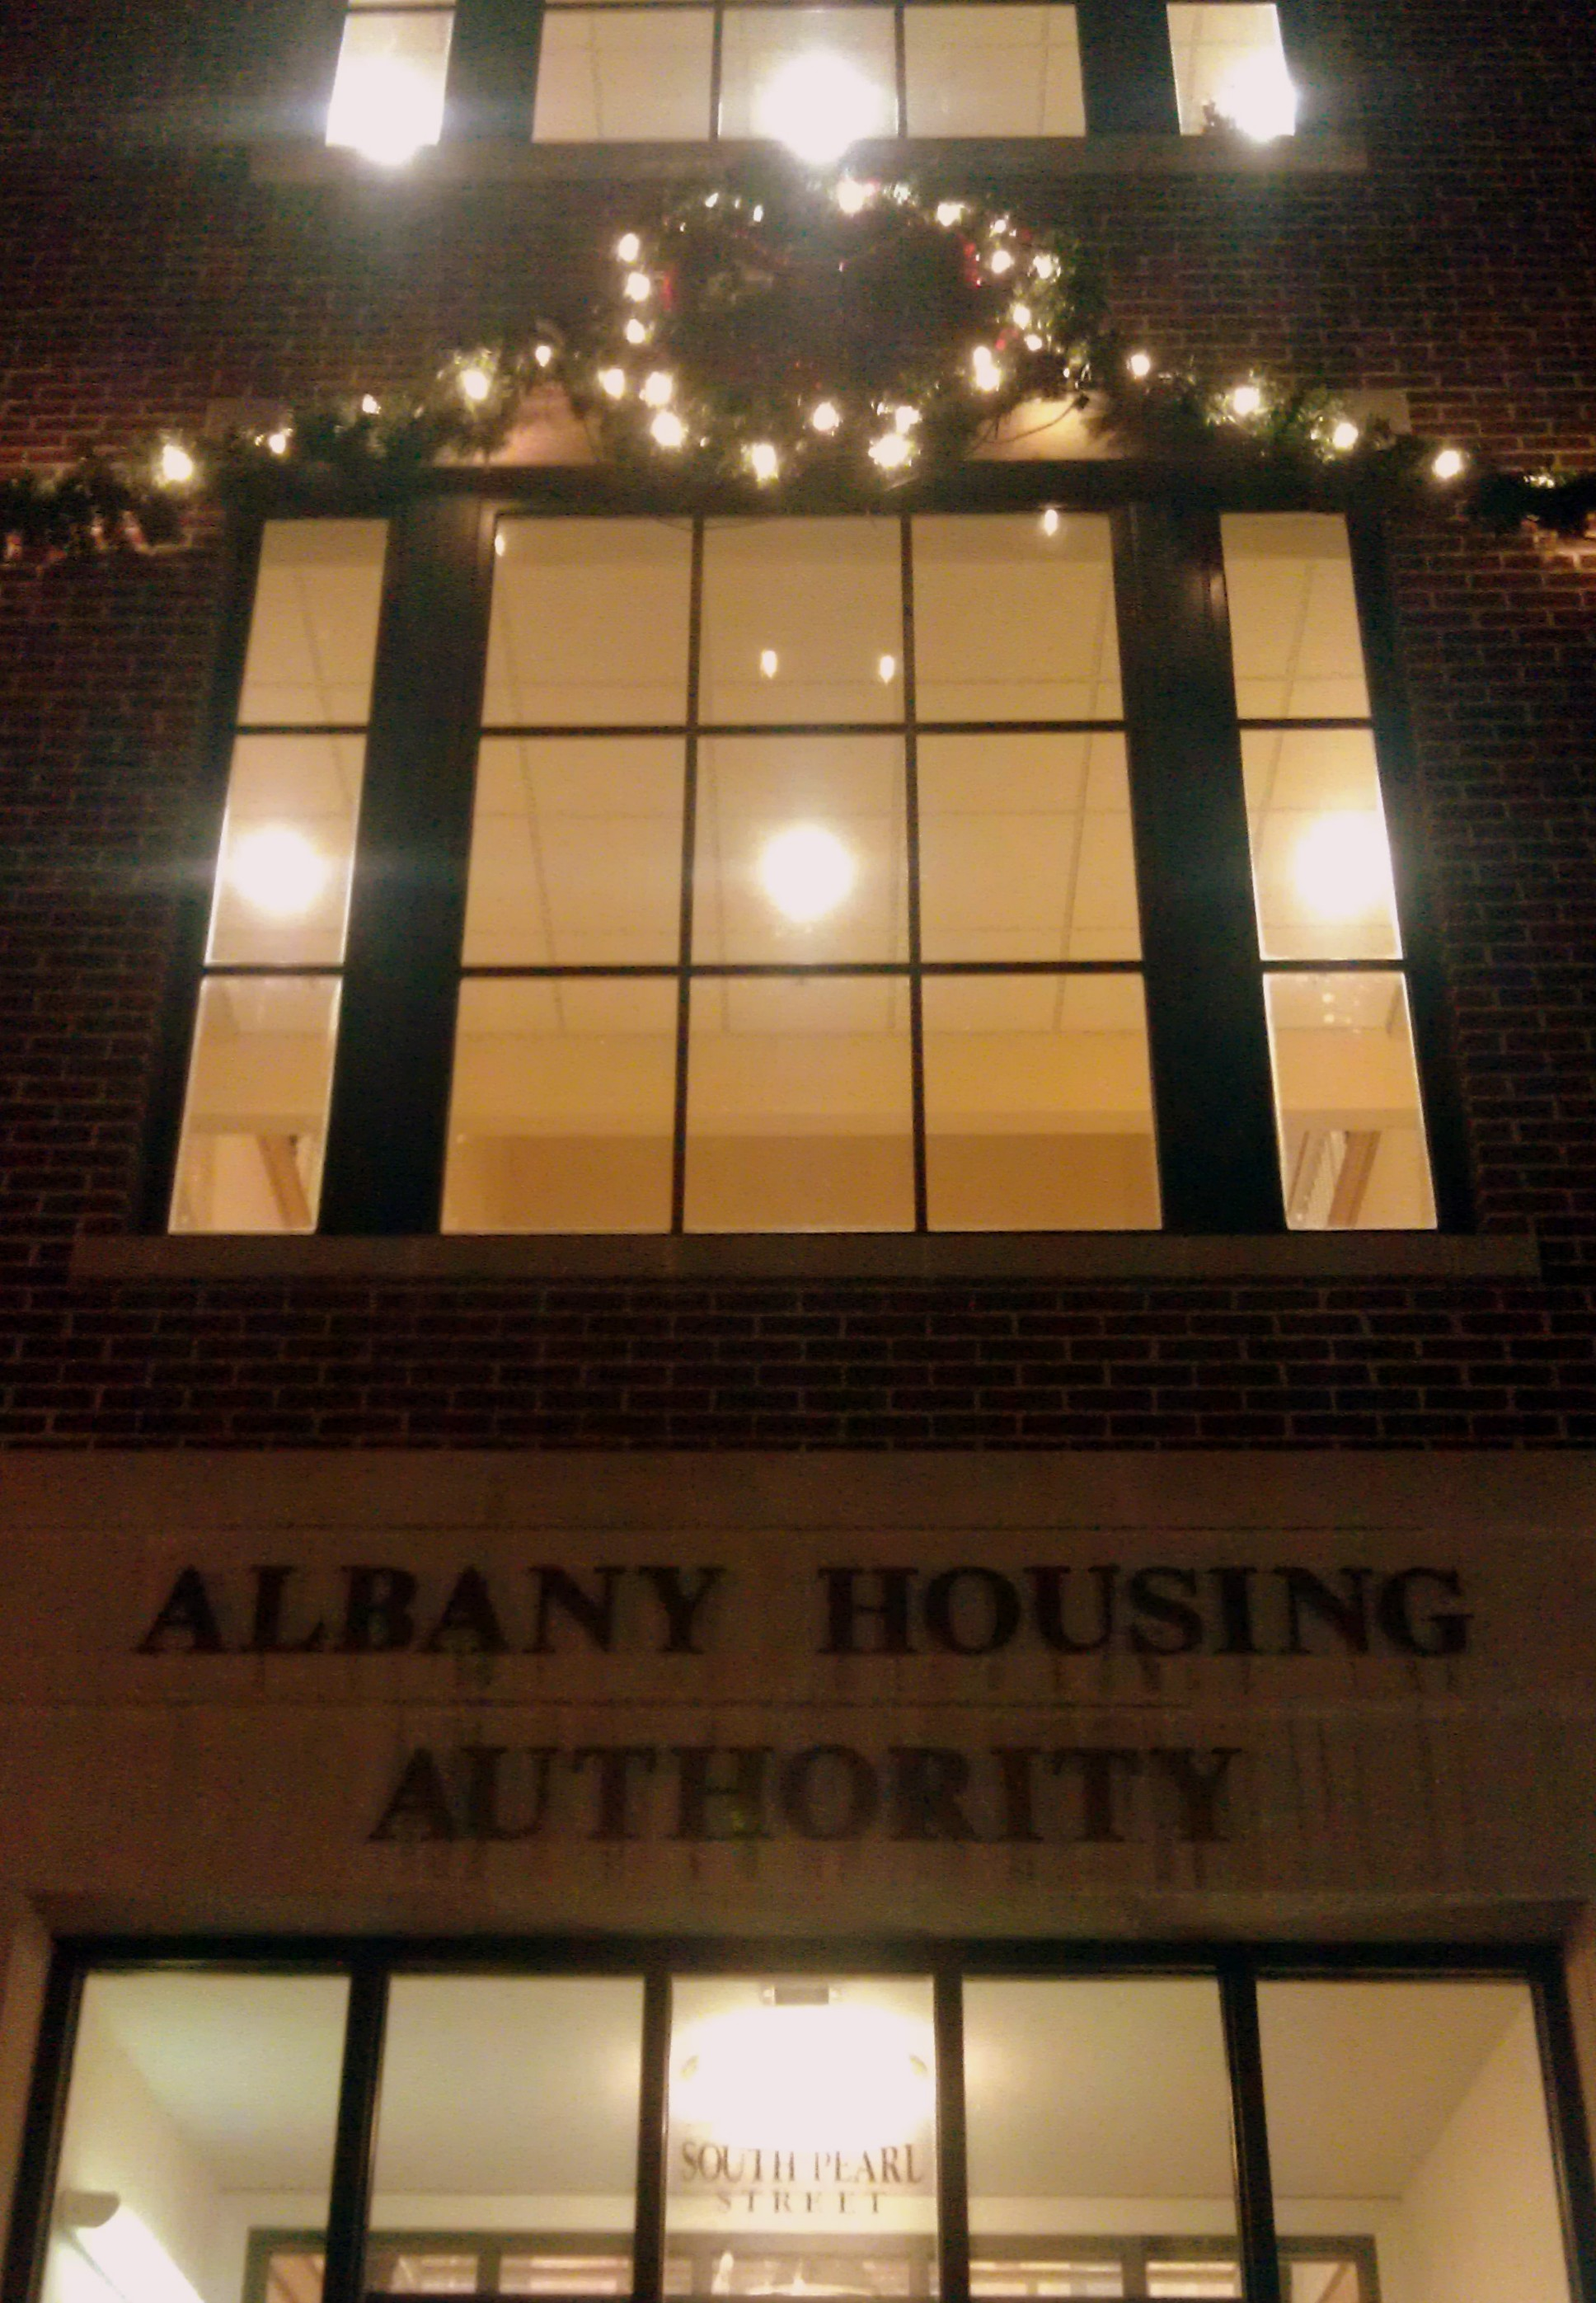 The Holidays are here at Albany Housing Authority Albany